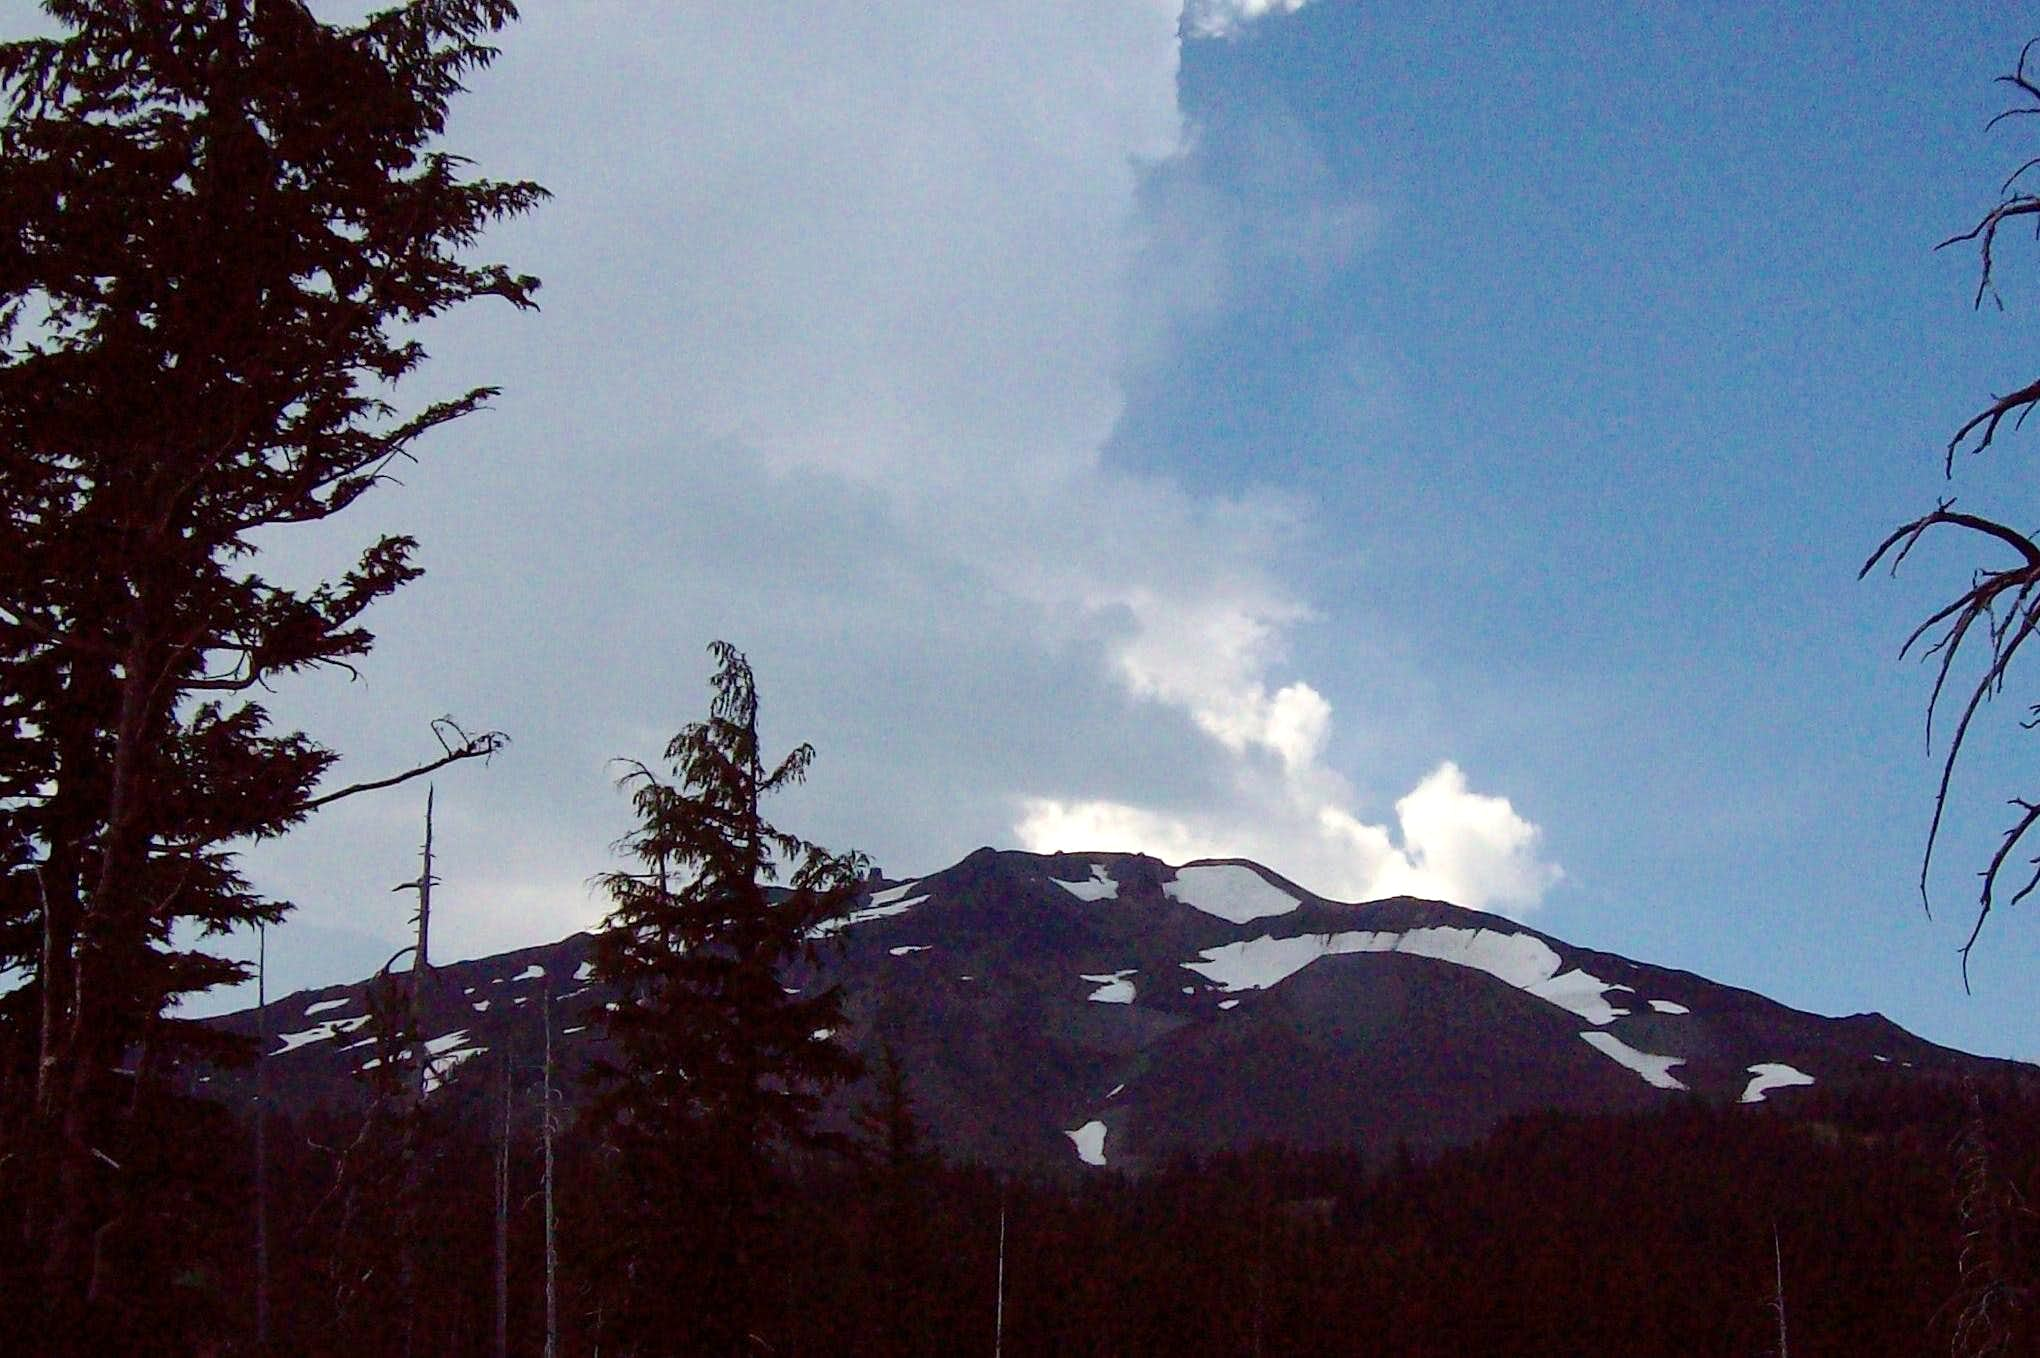 The Summit Cones of Bachelor